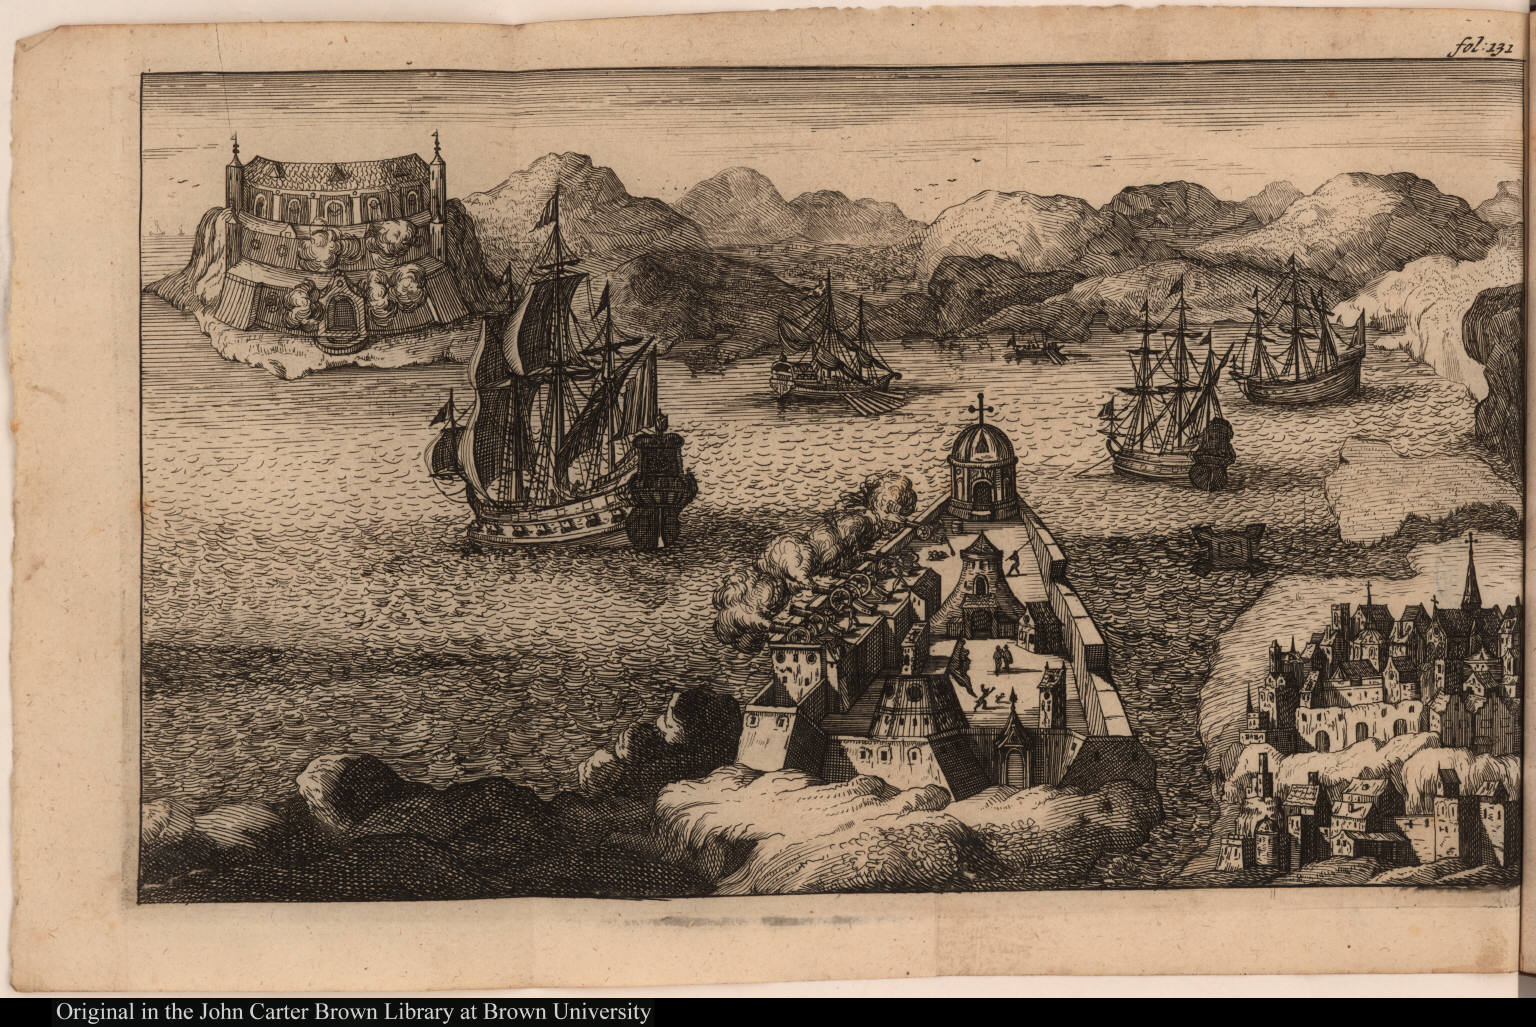 [Naval attack on seaport]